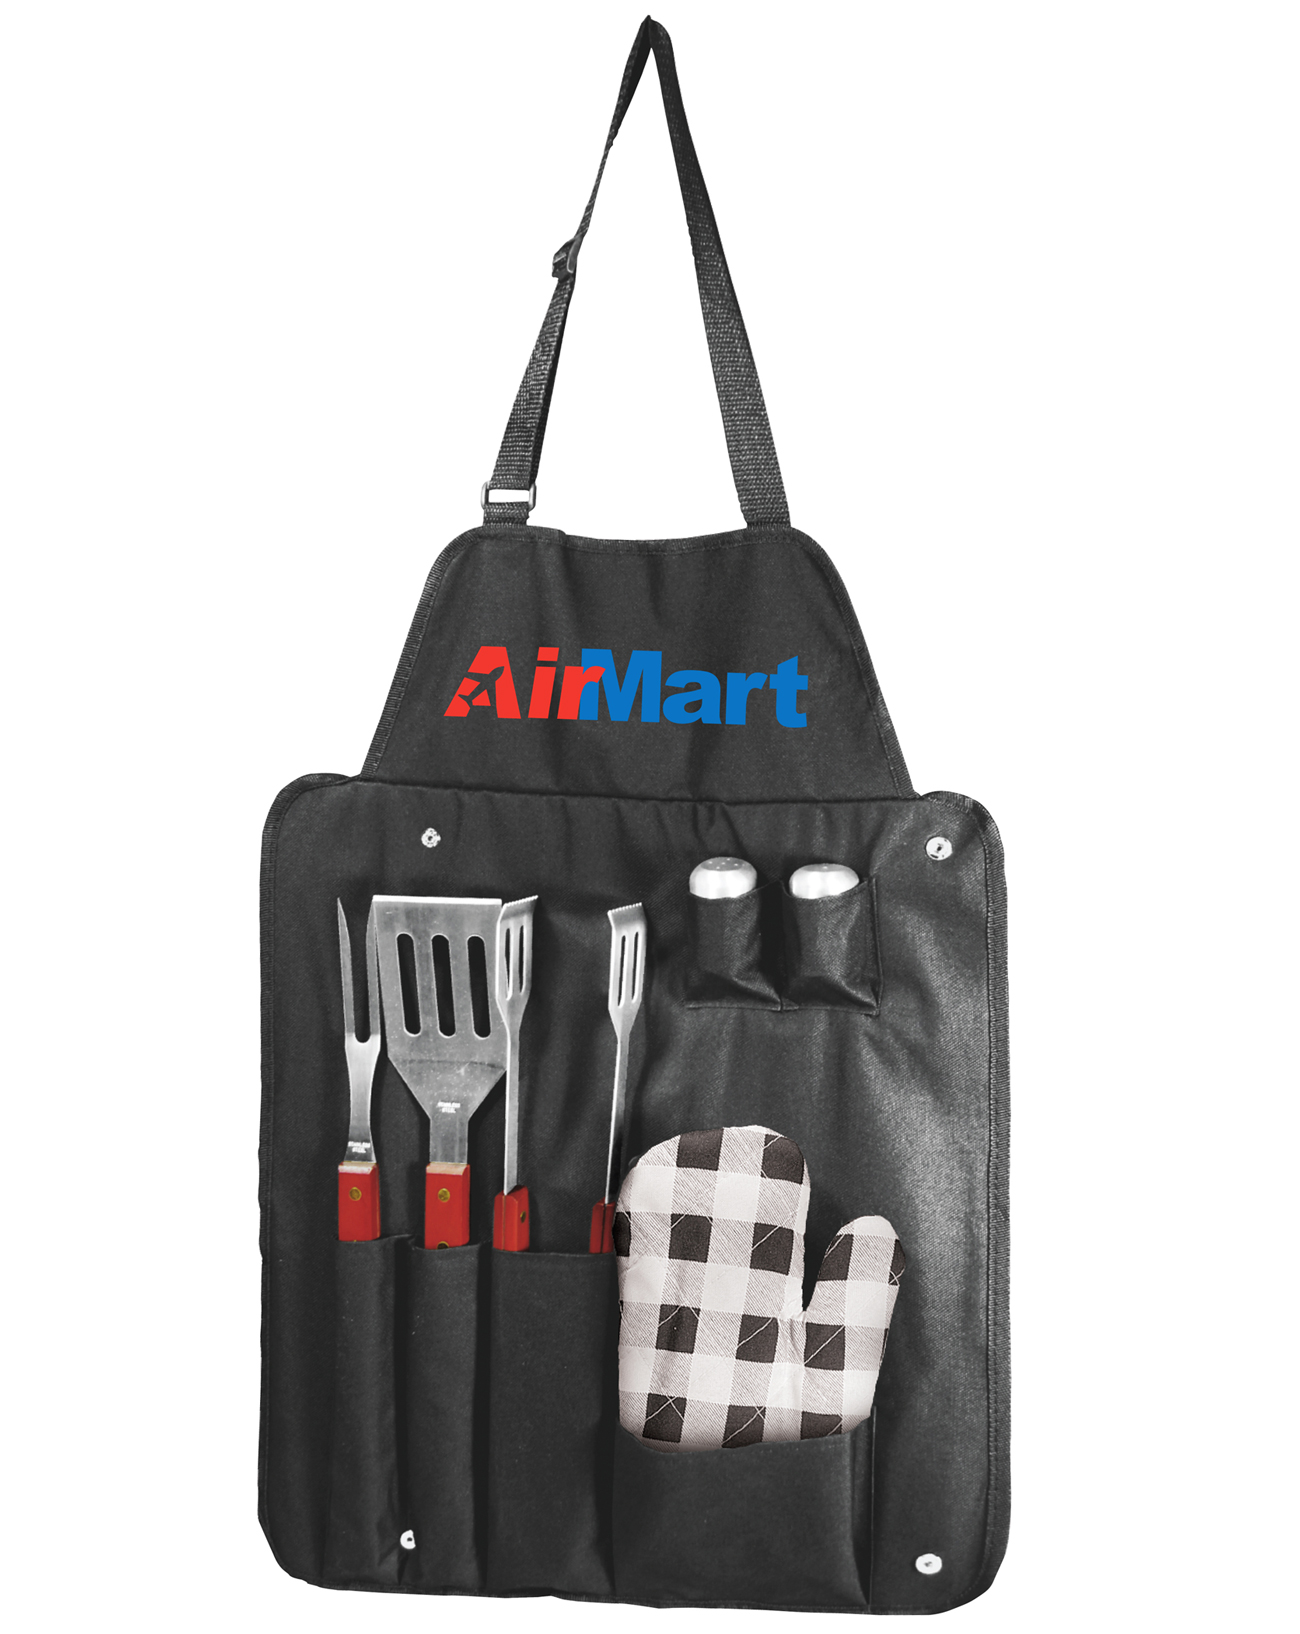 6 PIECE BBQ UTENSIL APRON SET